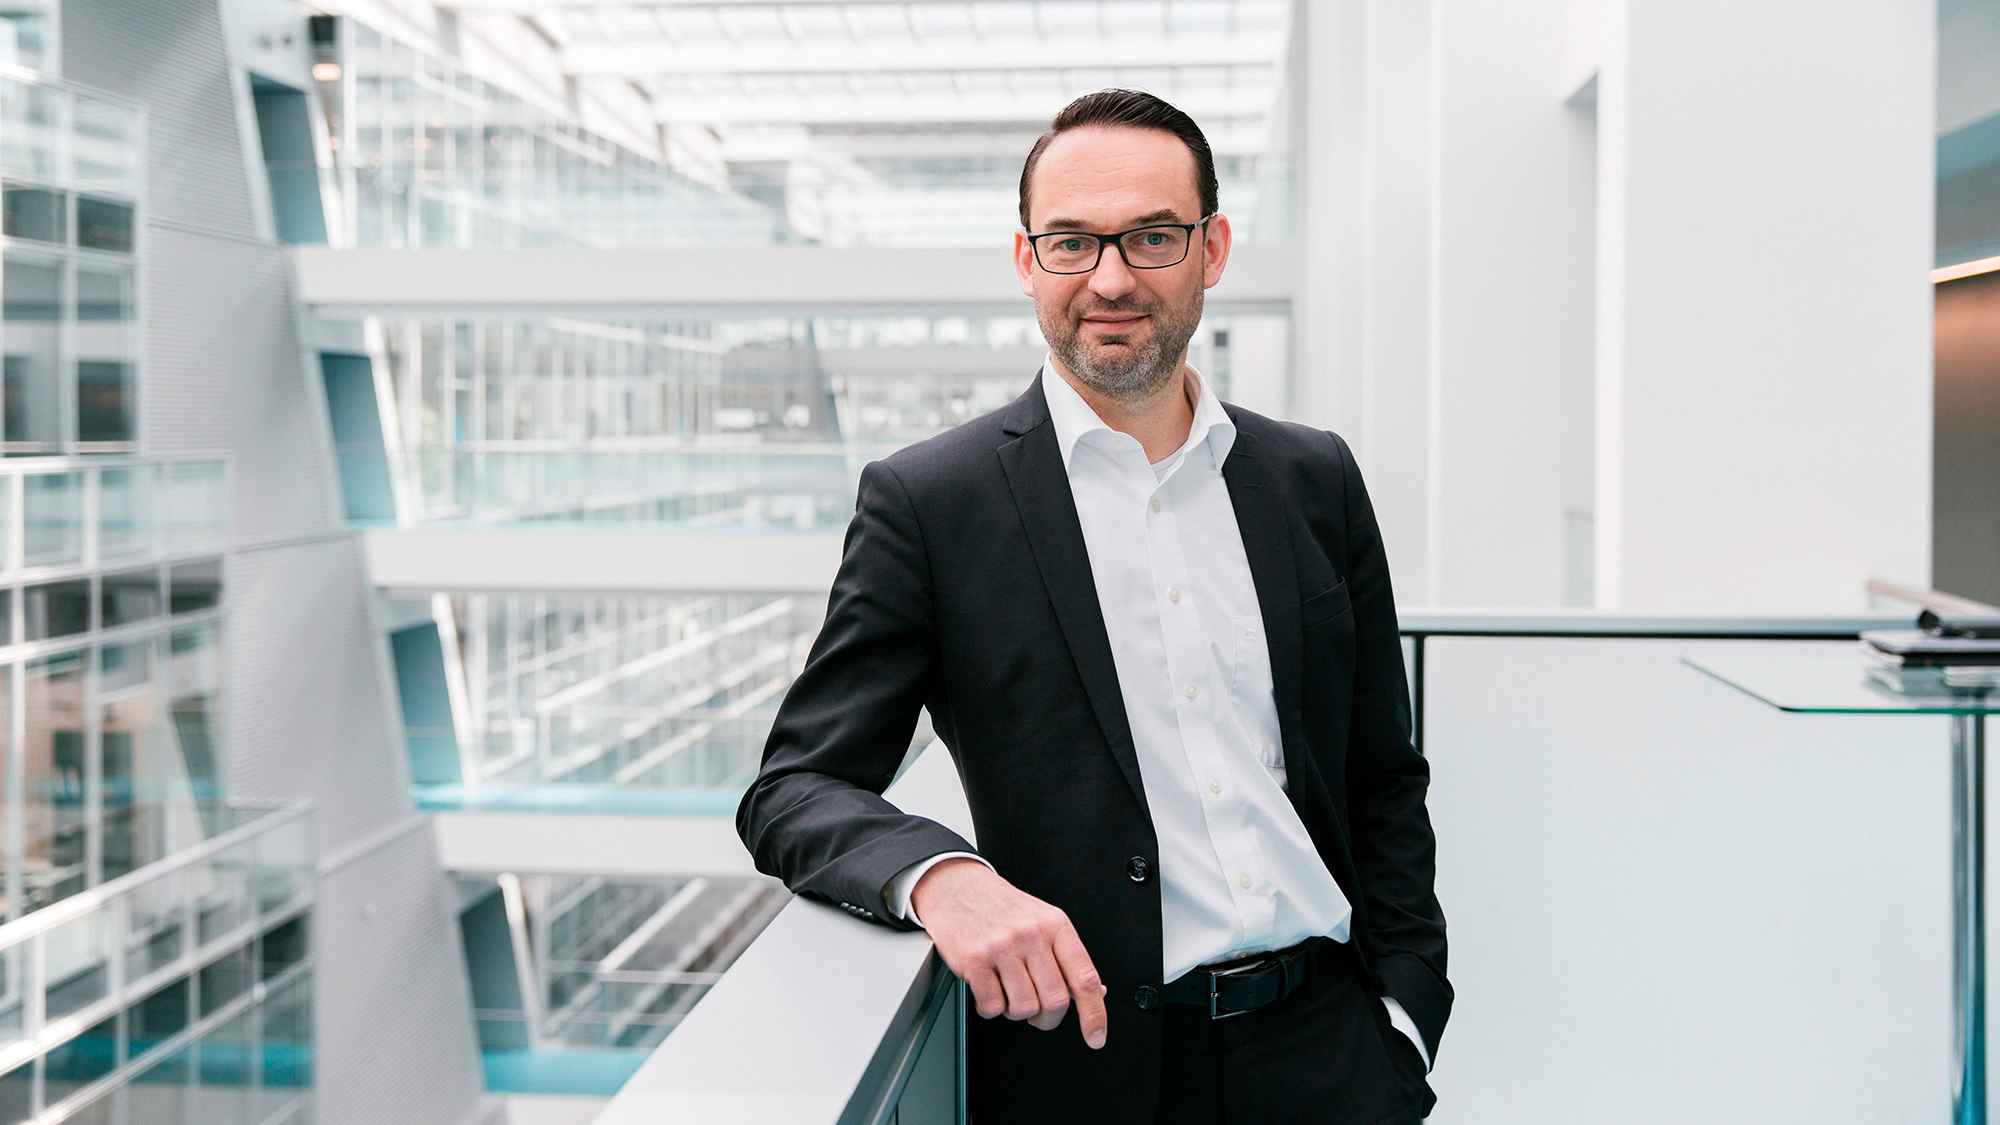 Christian Senger, VW-Vorstand für Digital Car & Services